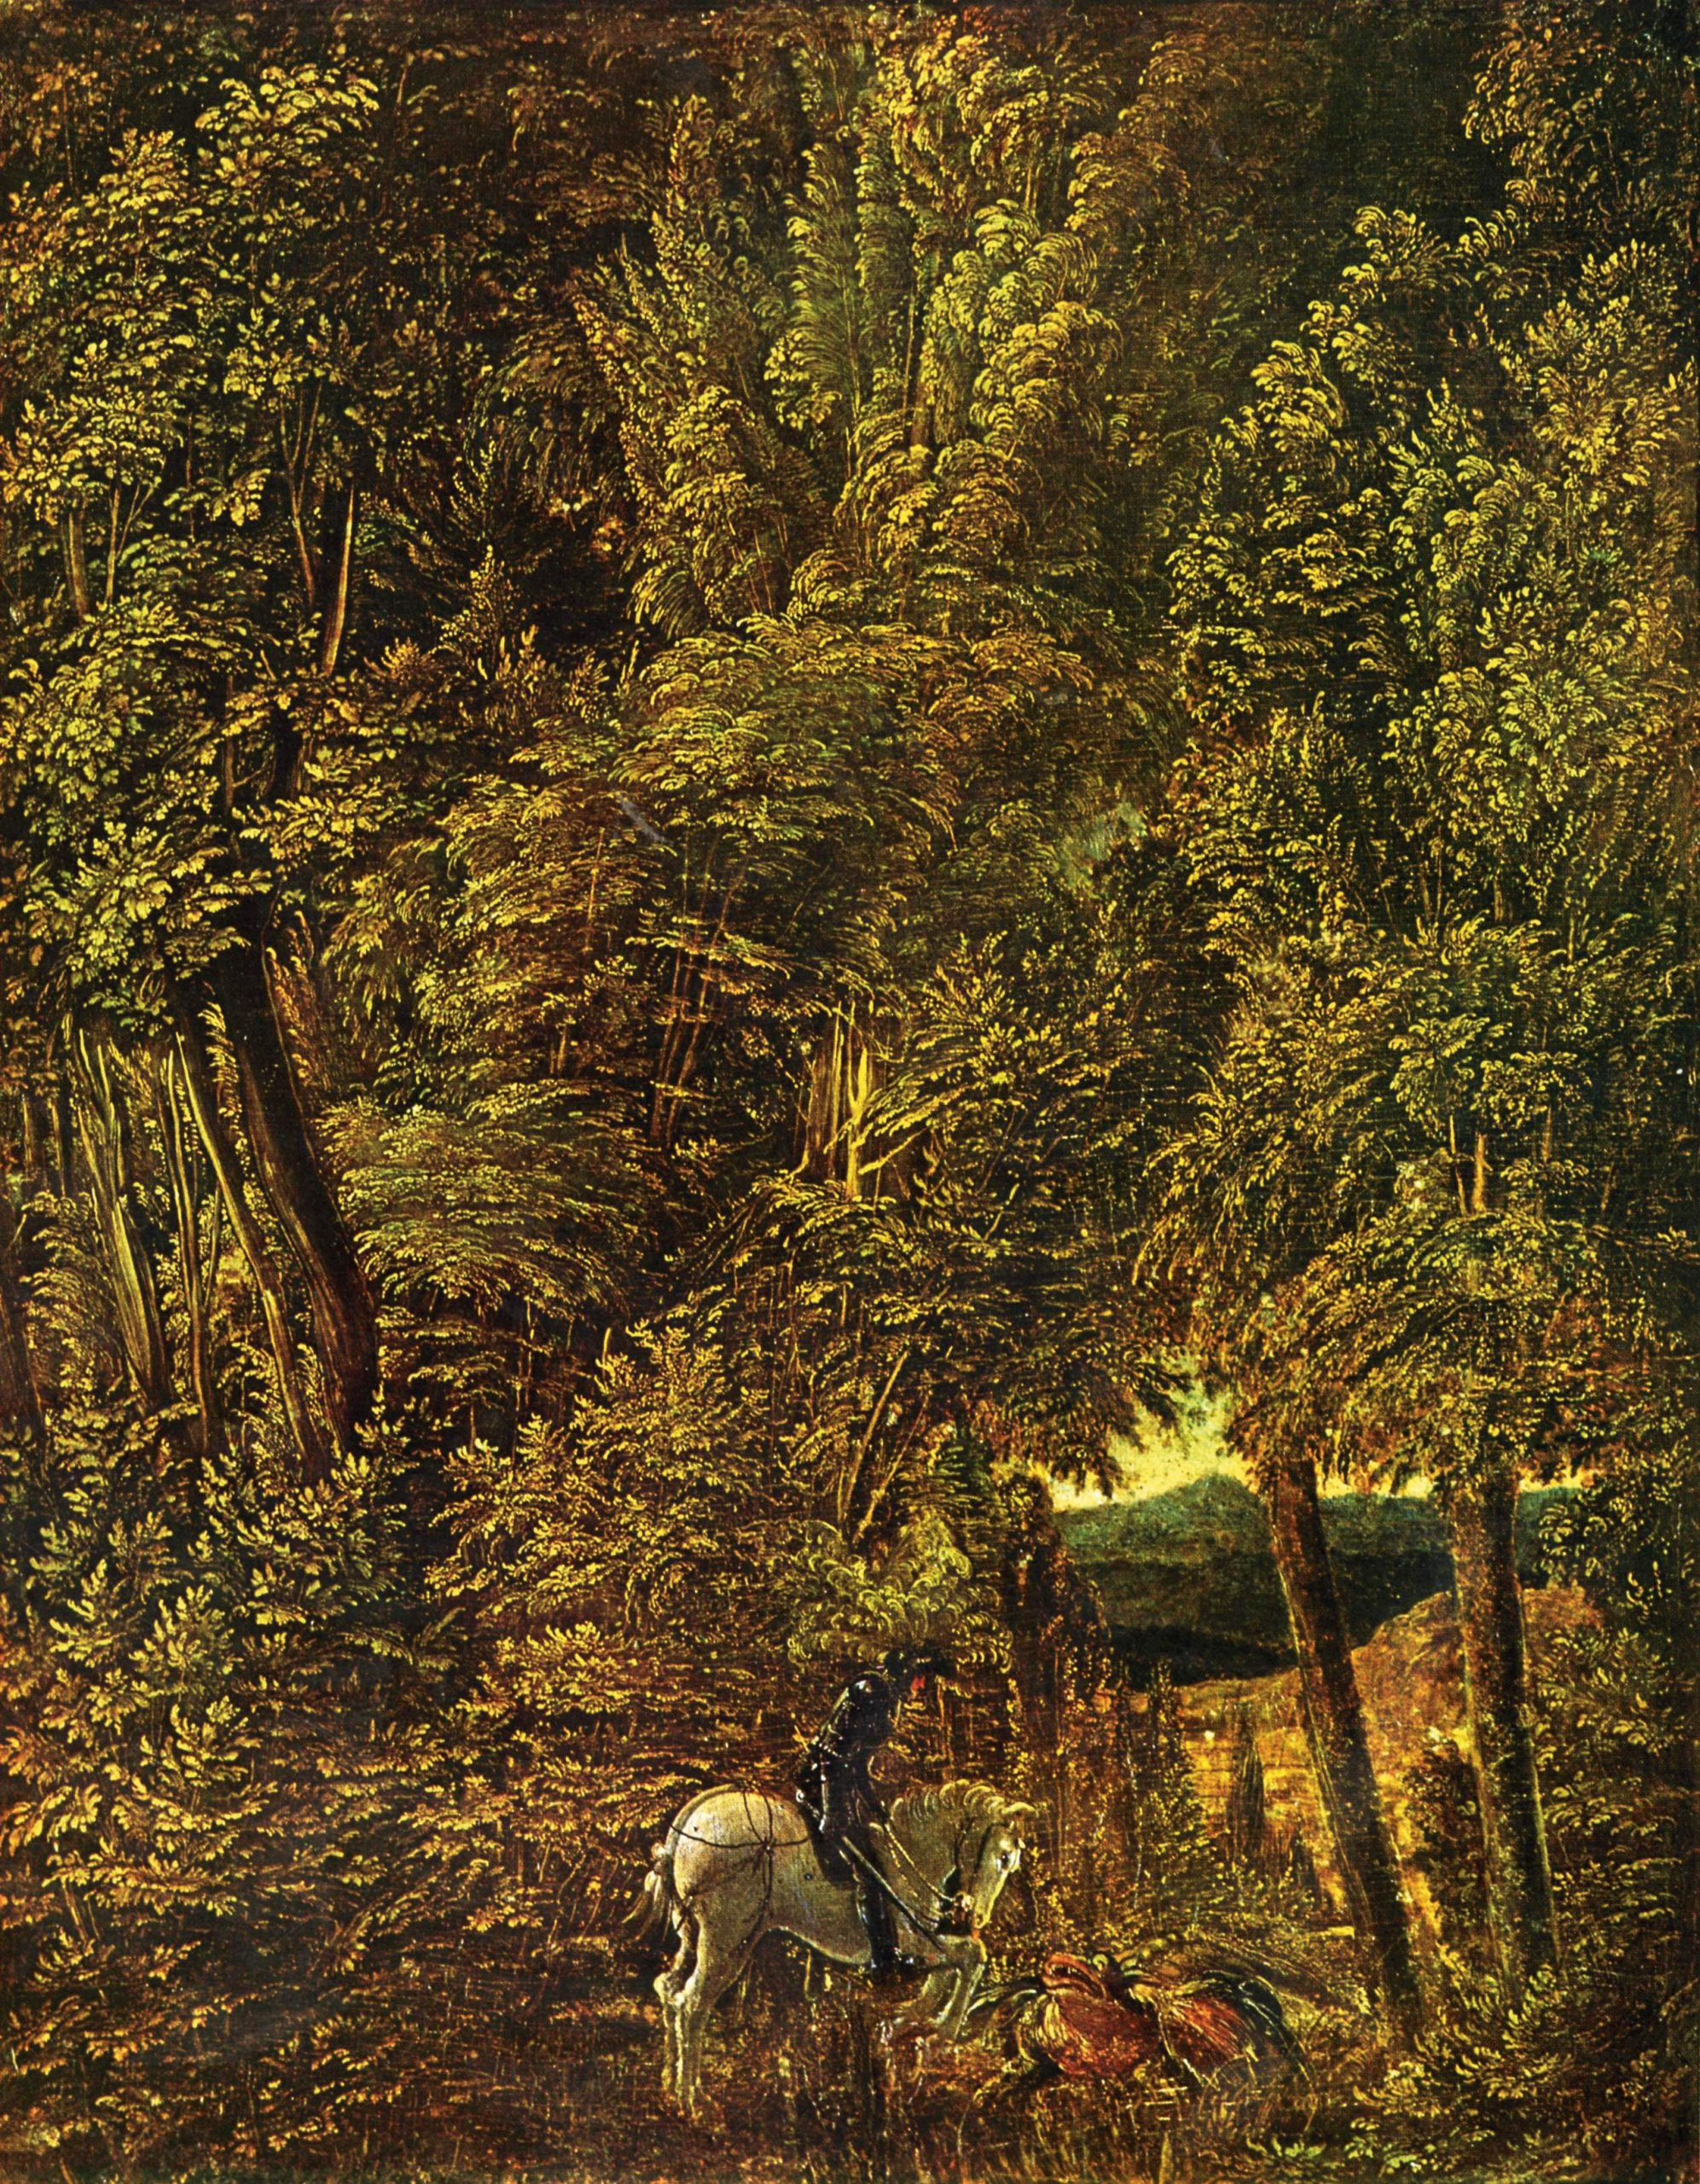 The greats outdoors: Albrecht Altdorfer's St George and the Dragon